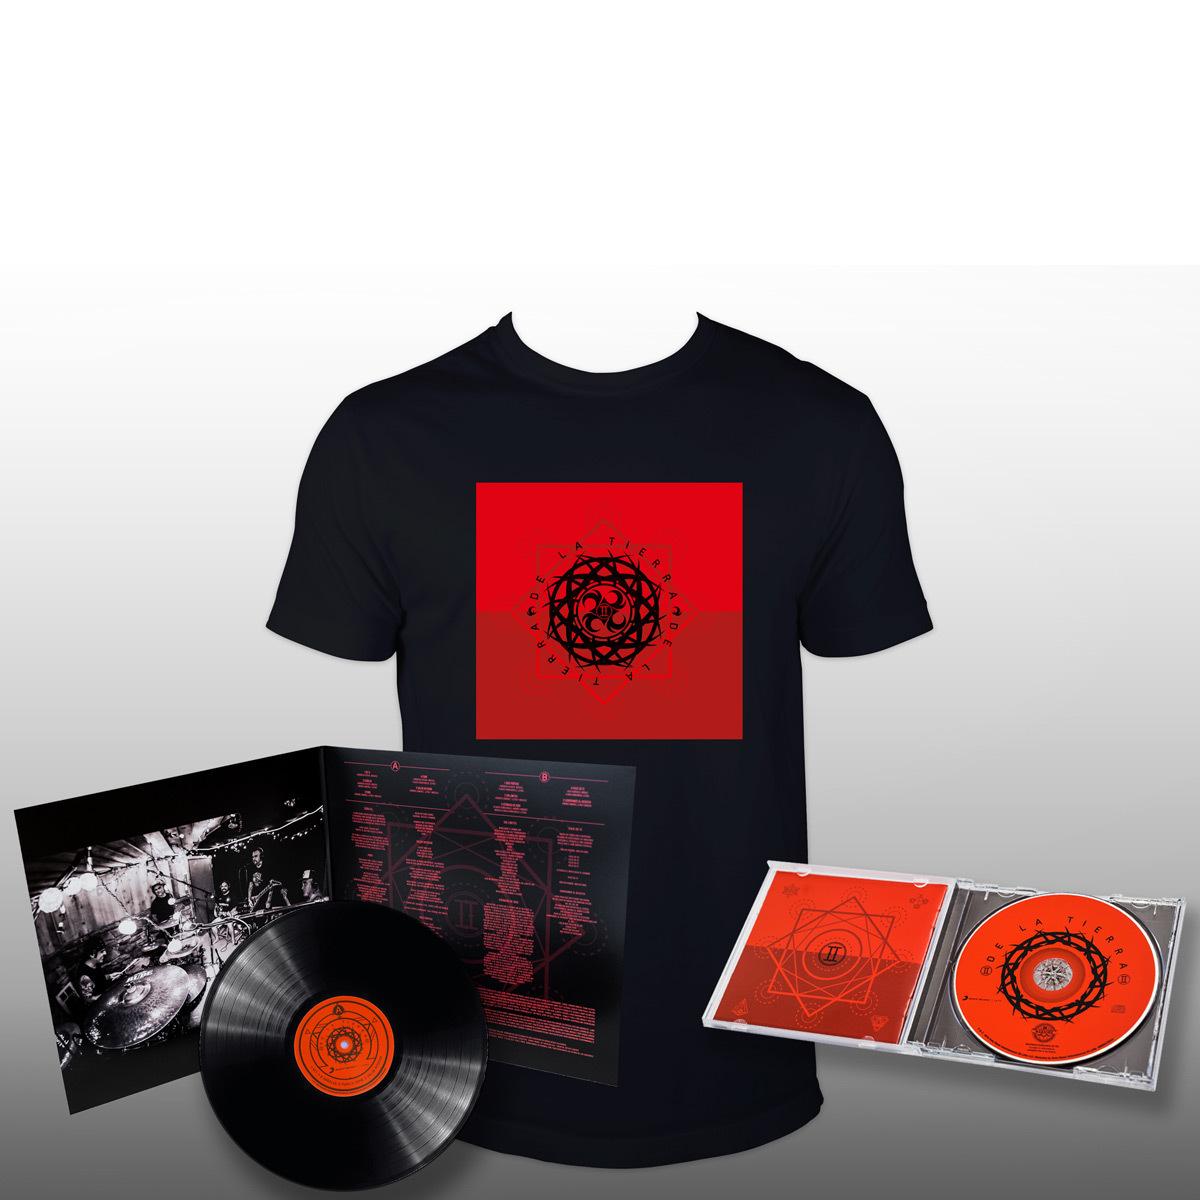 De La Tierra II LP + CD+ T-shirt Bundle